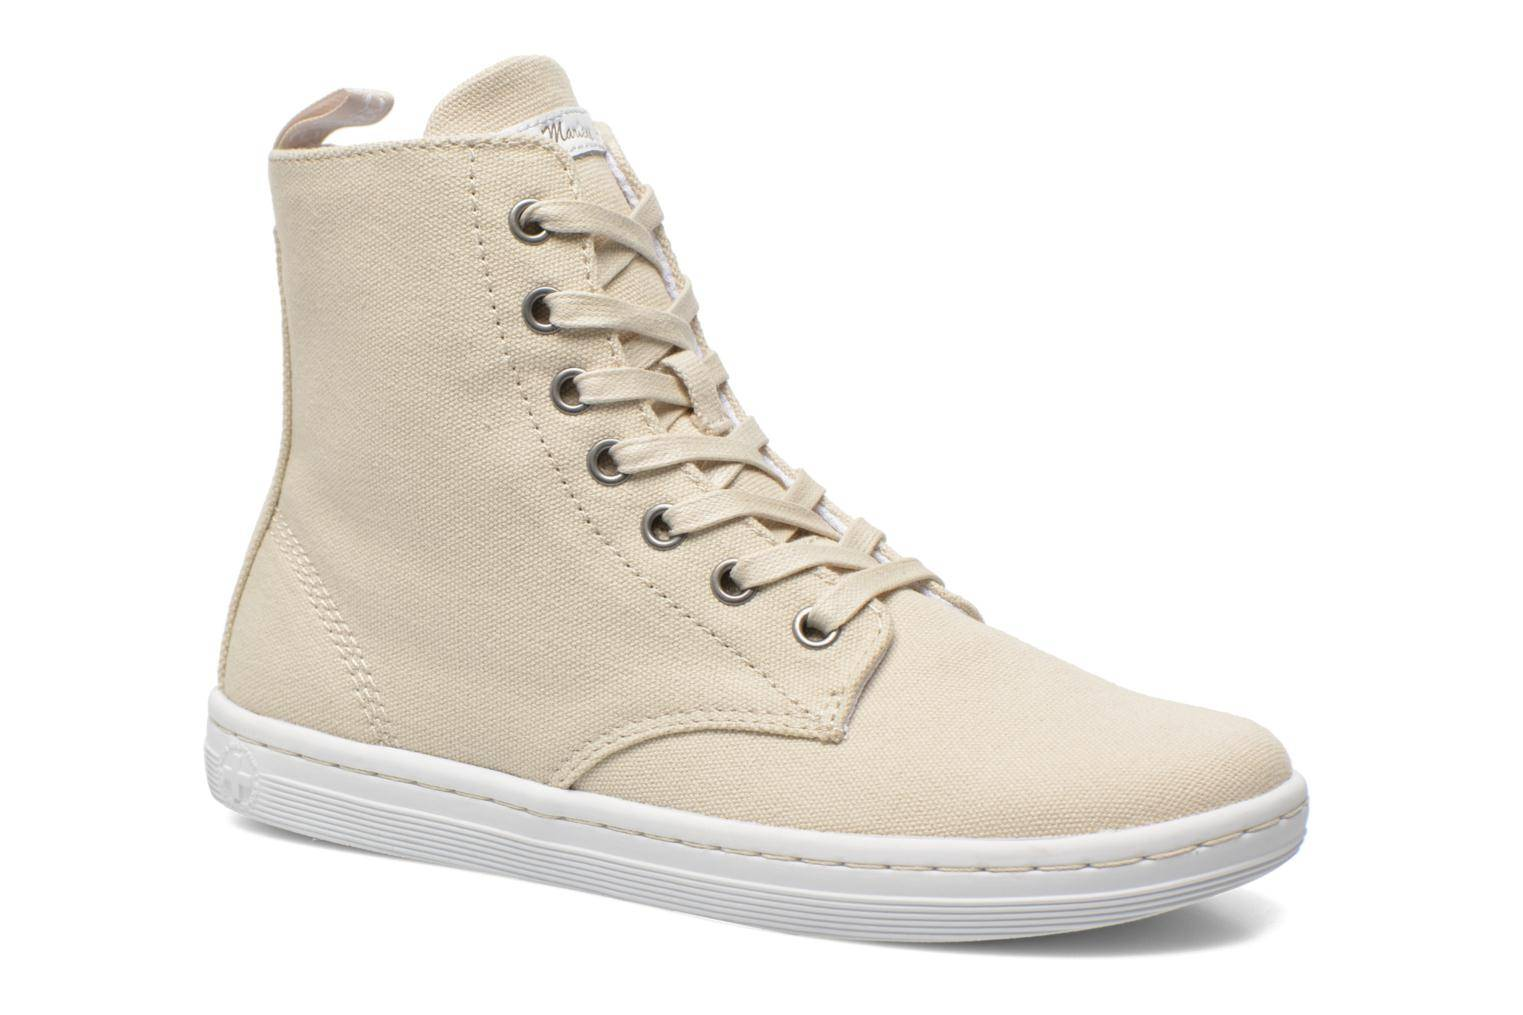 Dr. Martens - Ecletic Hackney 7 Eye Boot 3J03 by  - Tennarit Naisille  / Beige